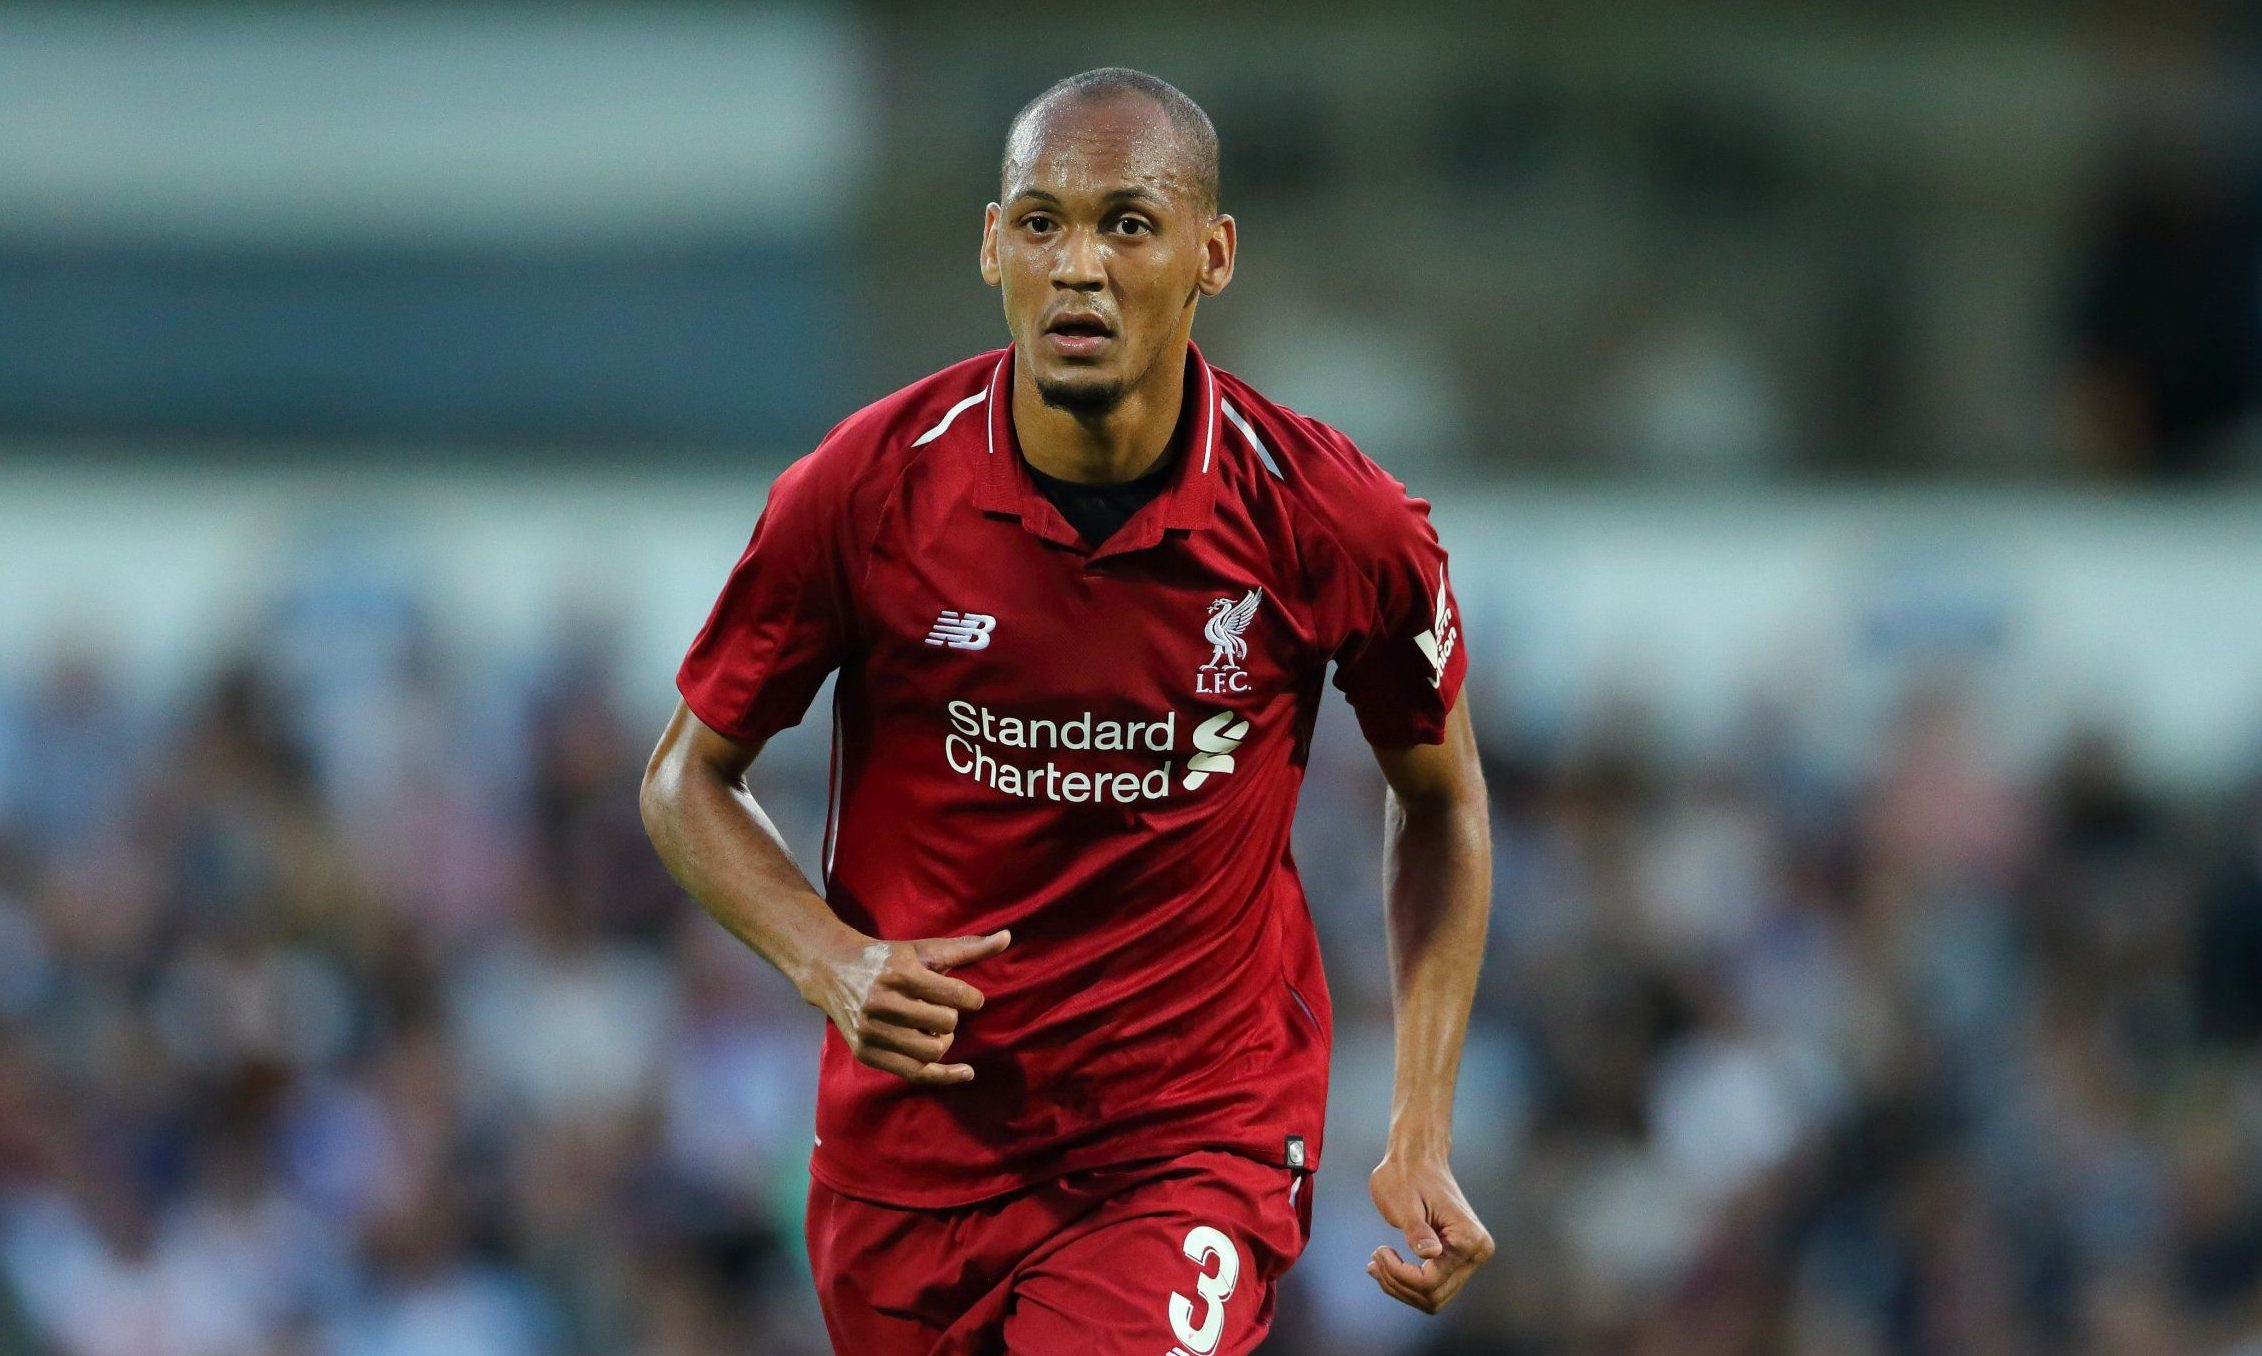 Jurgen Klopp claims Fabinho is close to making his full debut for Liverpool